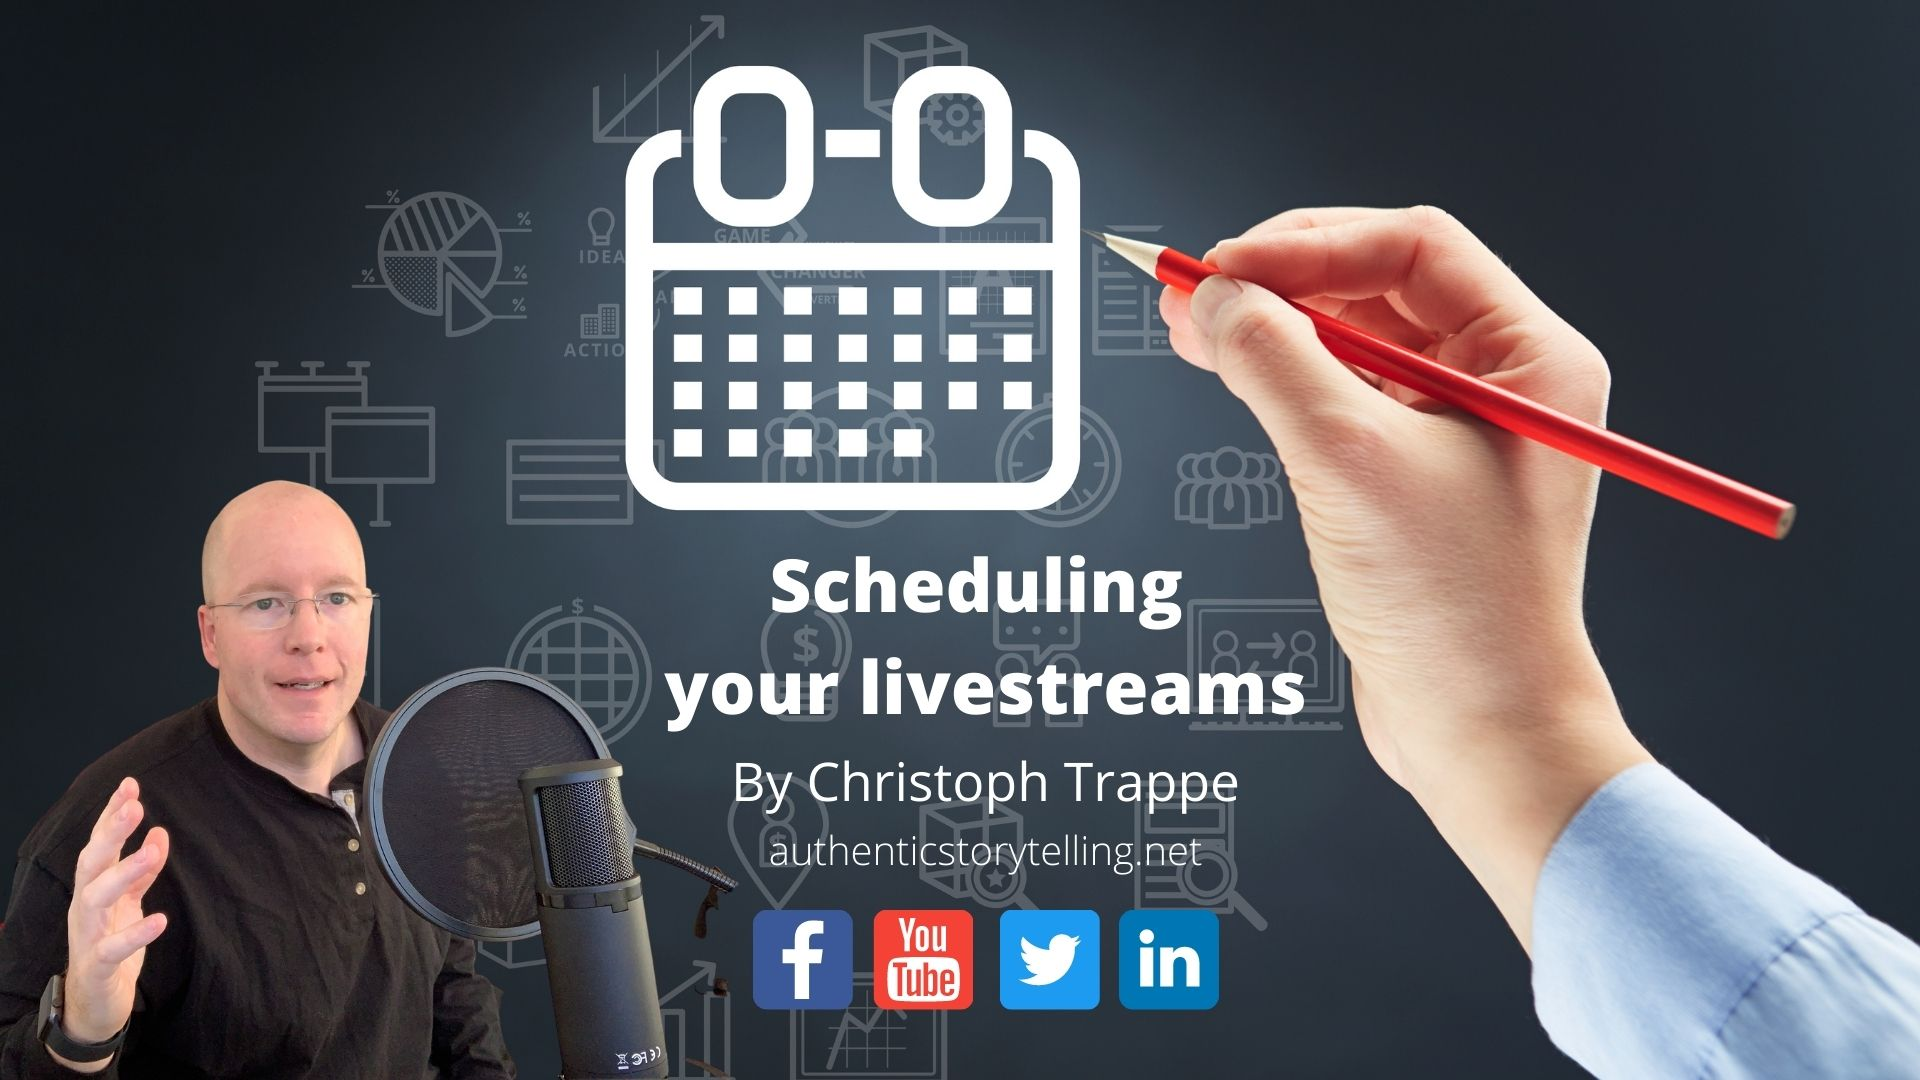 How to schedule livestreams to Facebook, YouTube, Twitter and LinkedIn - Content + Digital Marketing Tips